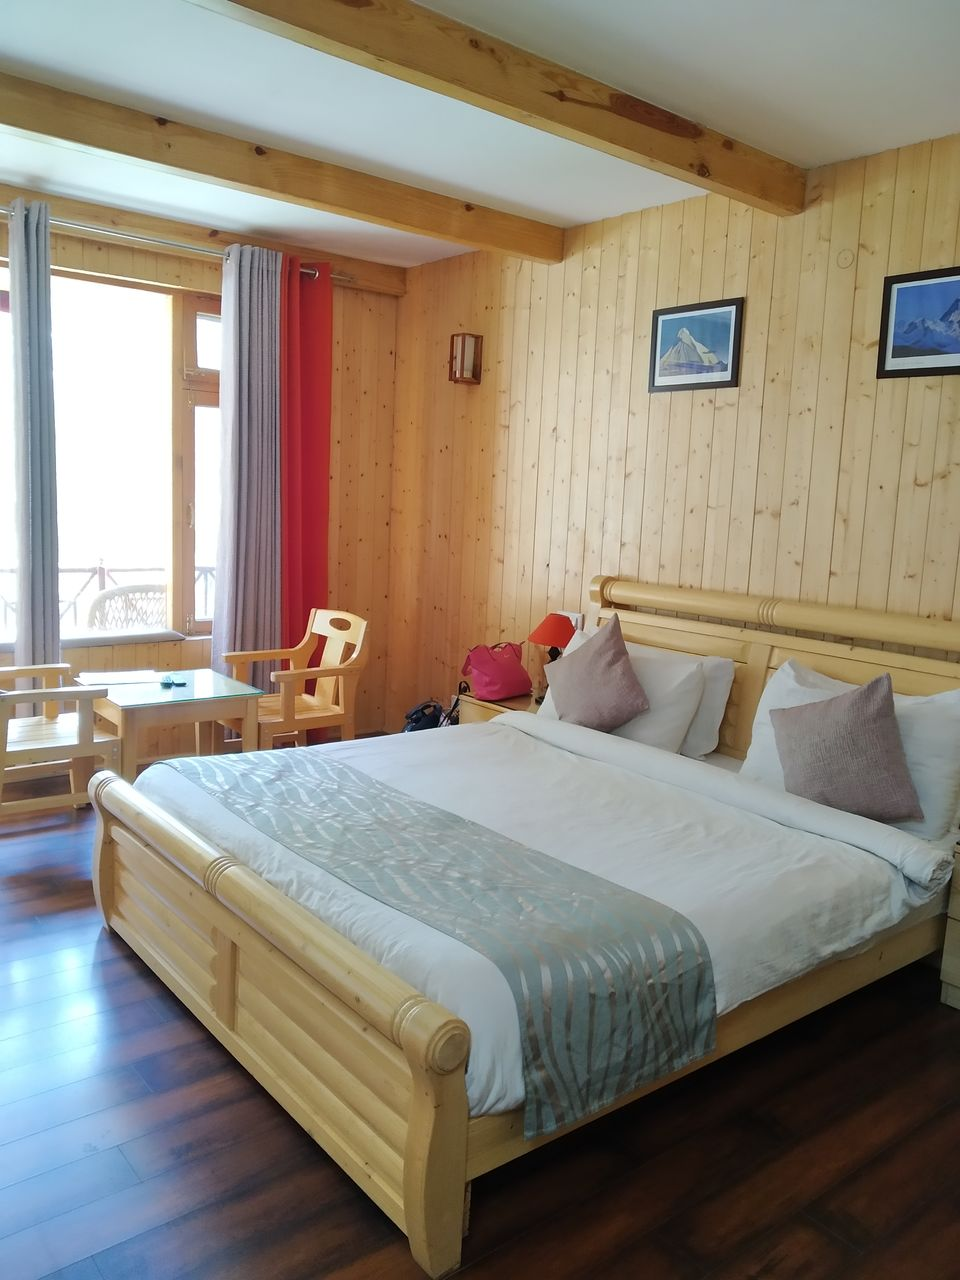 Where to stay in Manali image